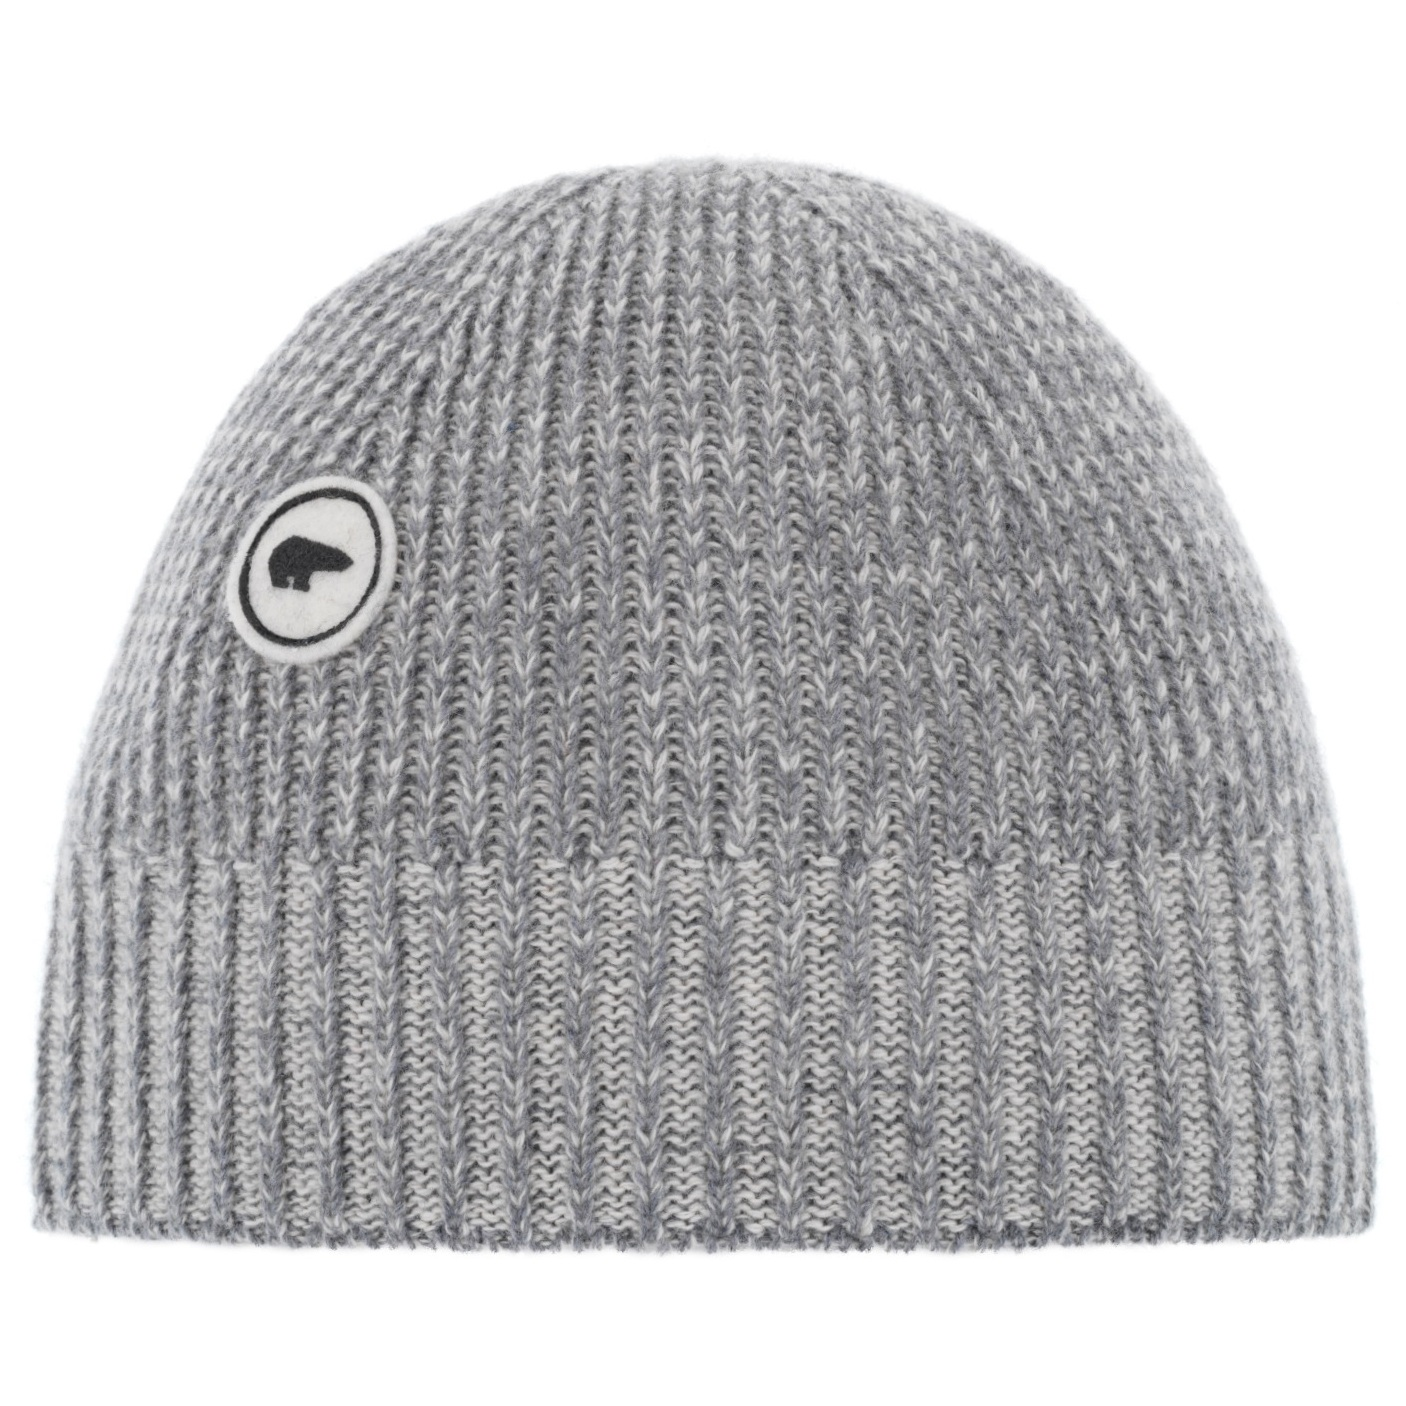 Picture of Eisbär Anat Beanie - grey/nature 6